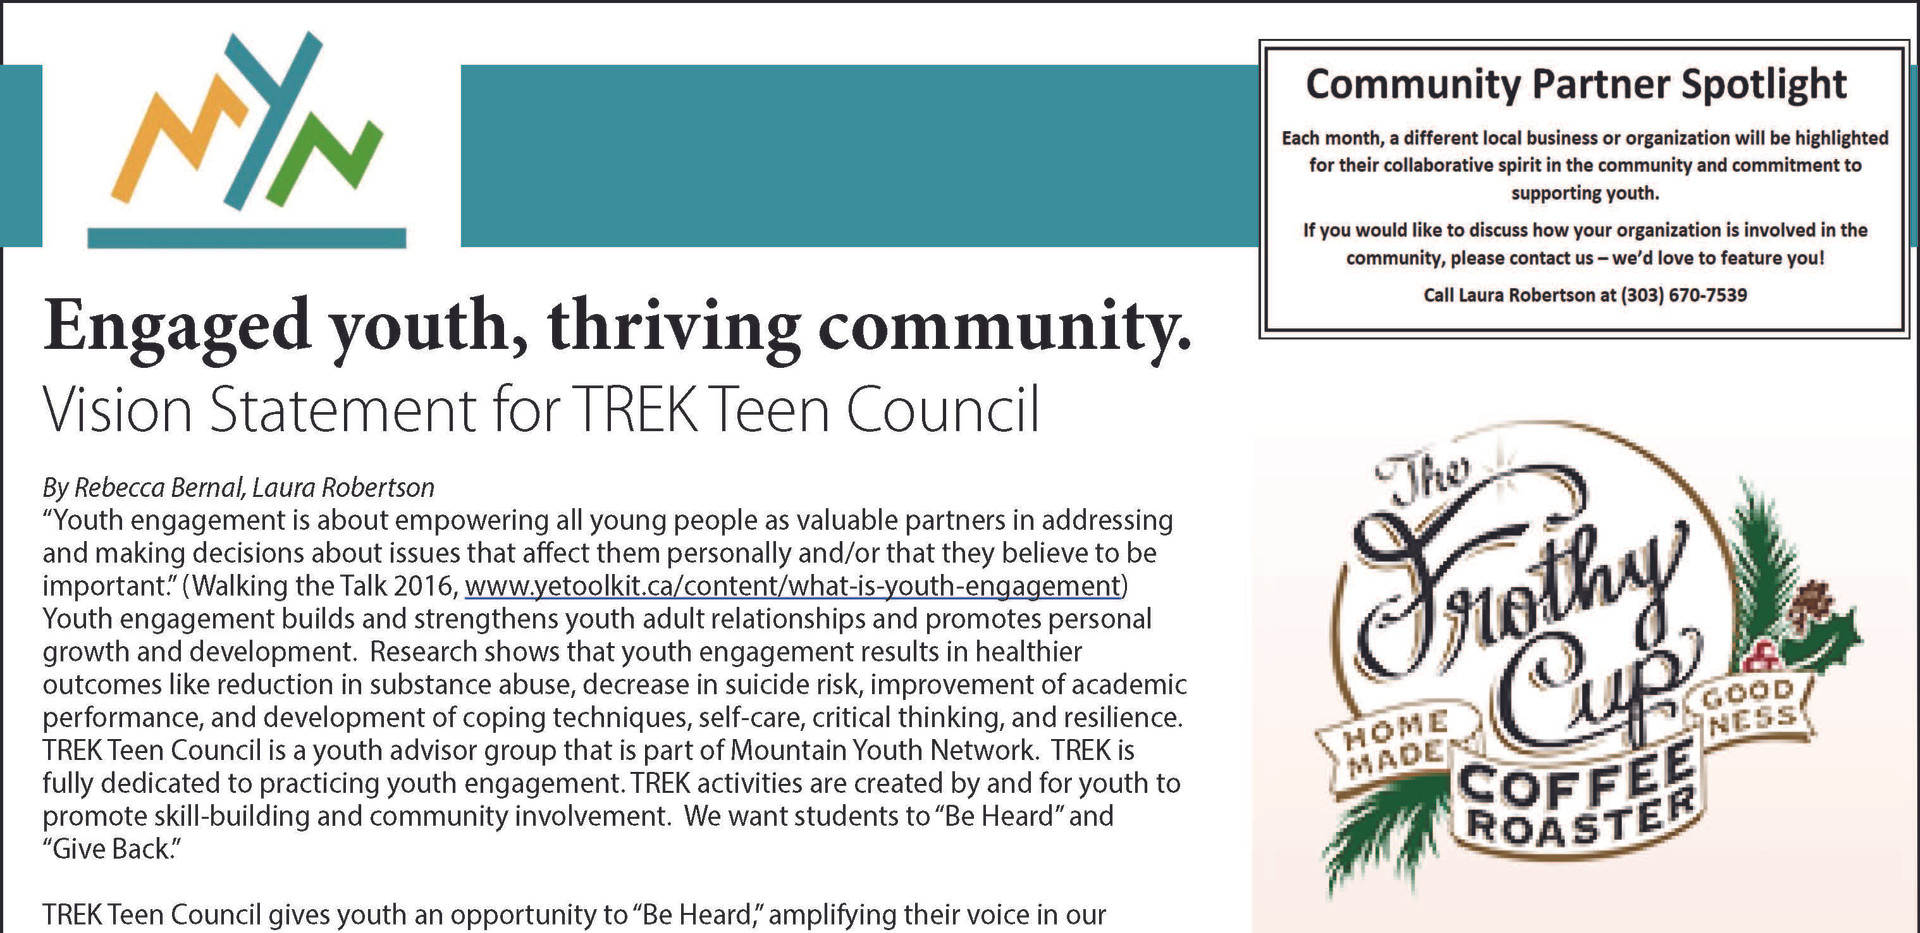 Courant 2020_02. Engaged Youth Thriving Community